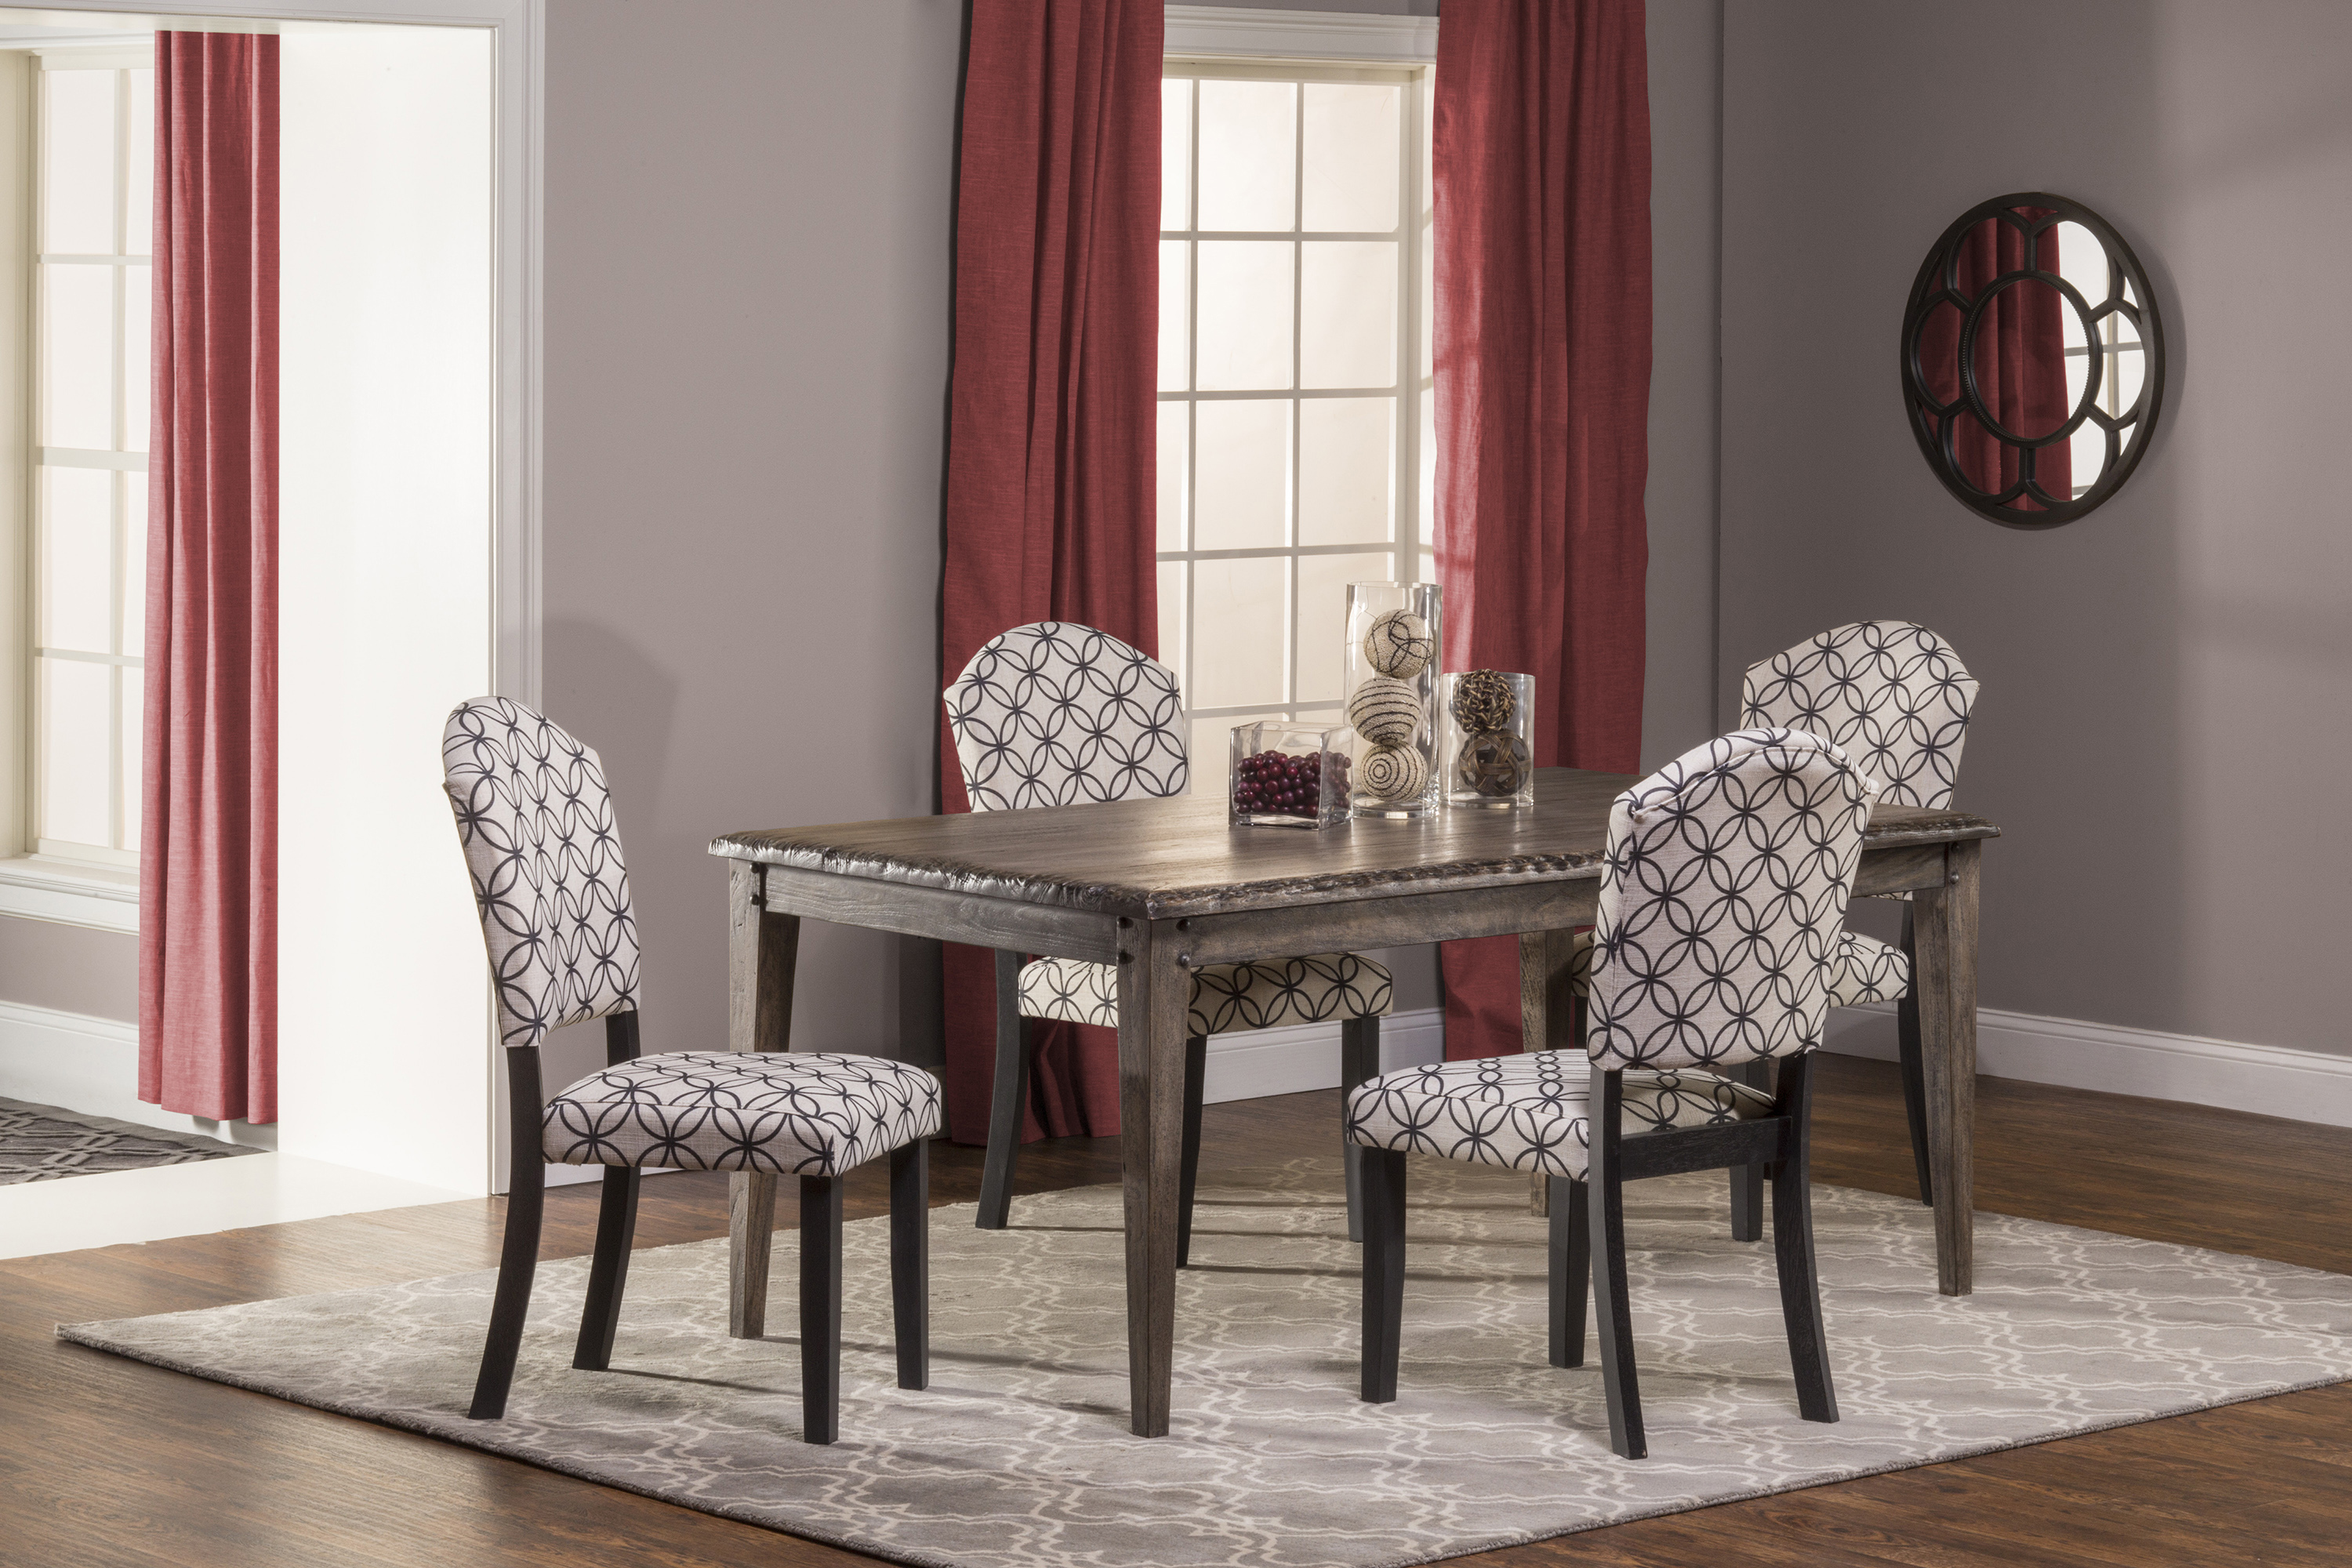 Hillsdale Lorient 5-Piece Rectangle Dining Set with Parsons Di - Item Number: 5676DTRSP5